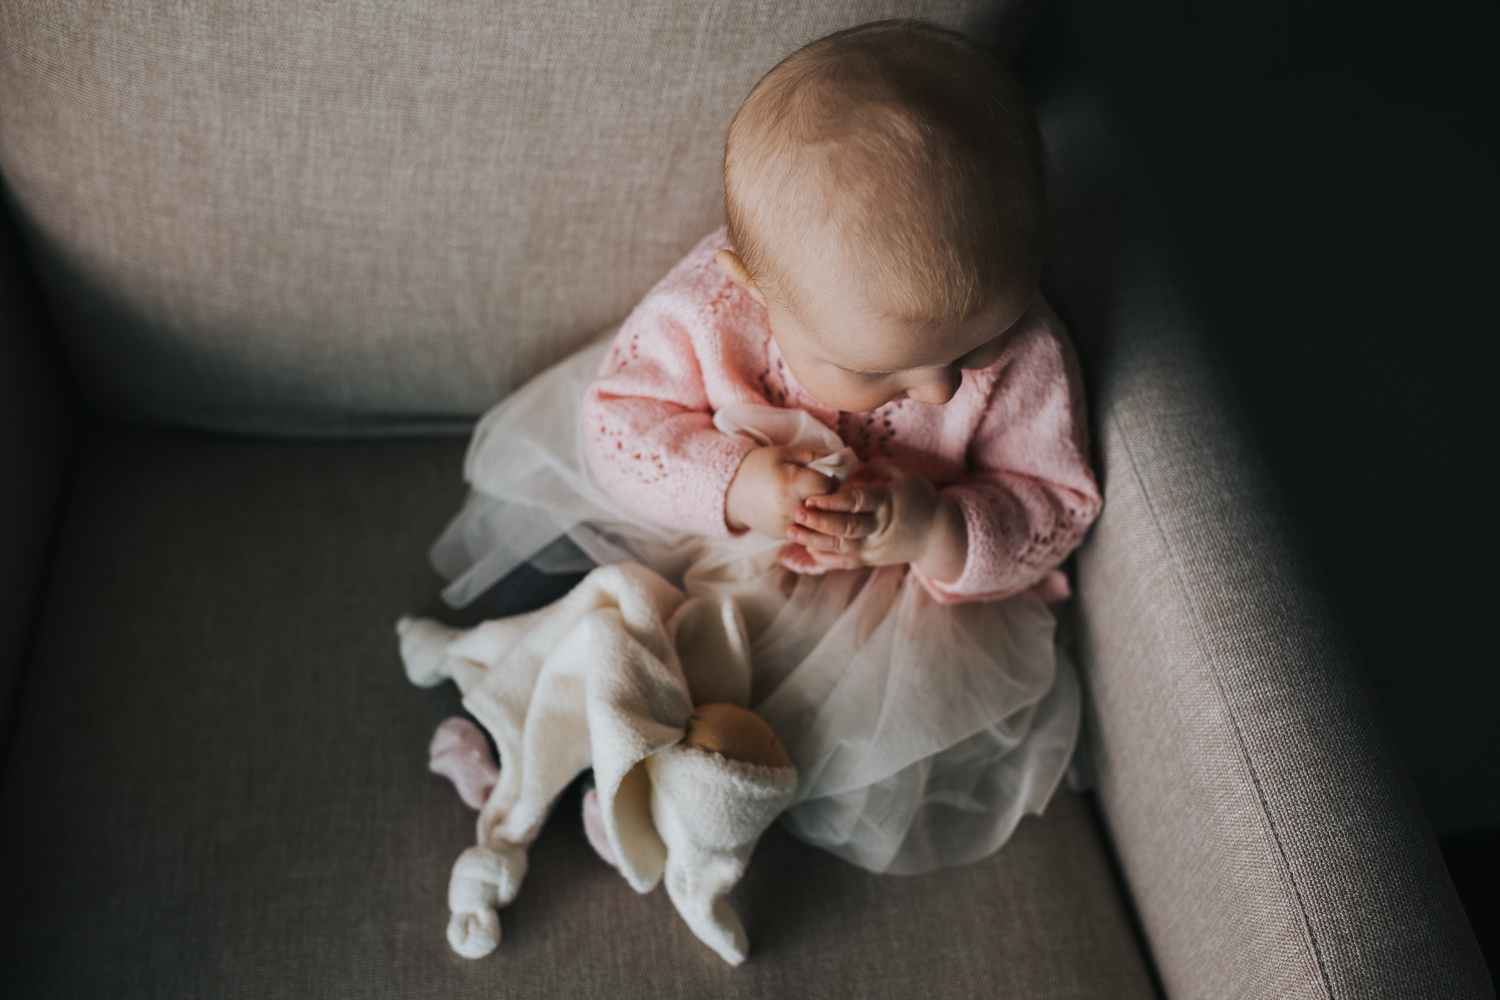 5 month old baby girl in pink sweater sitting on chair with stuffed toy - Barrie lifestyle photography